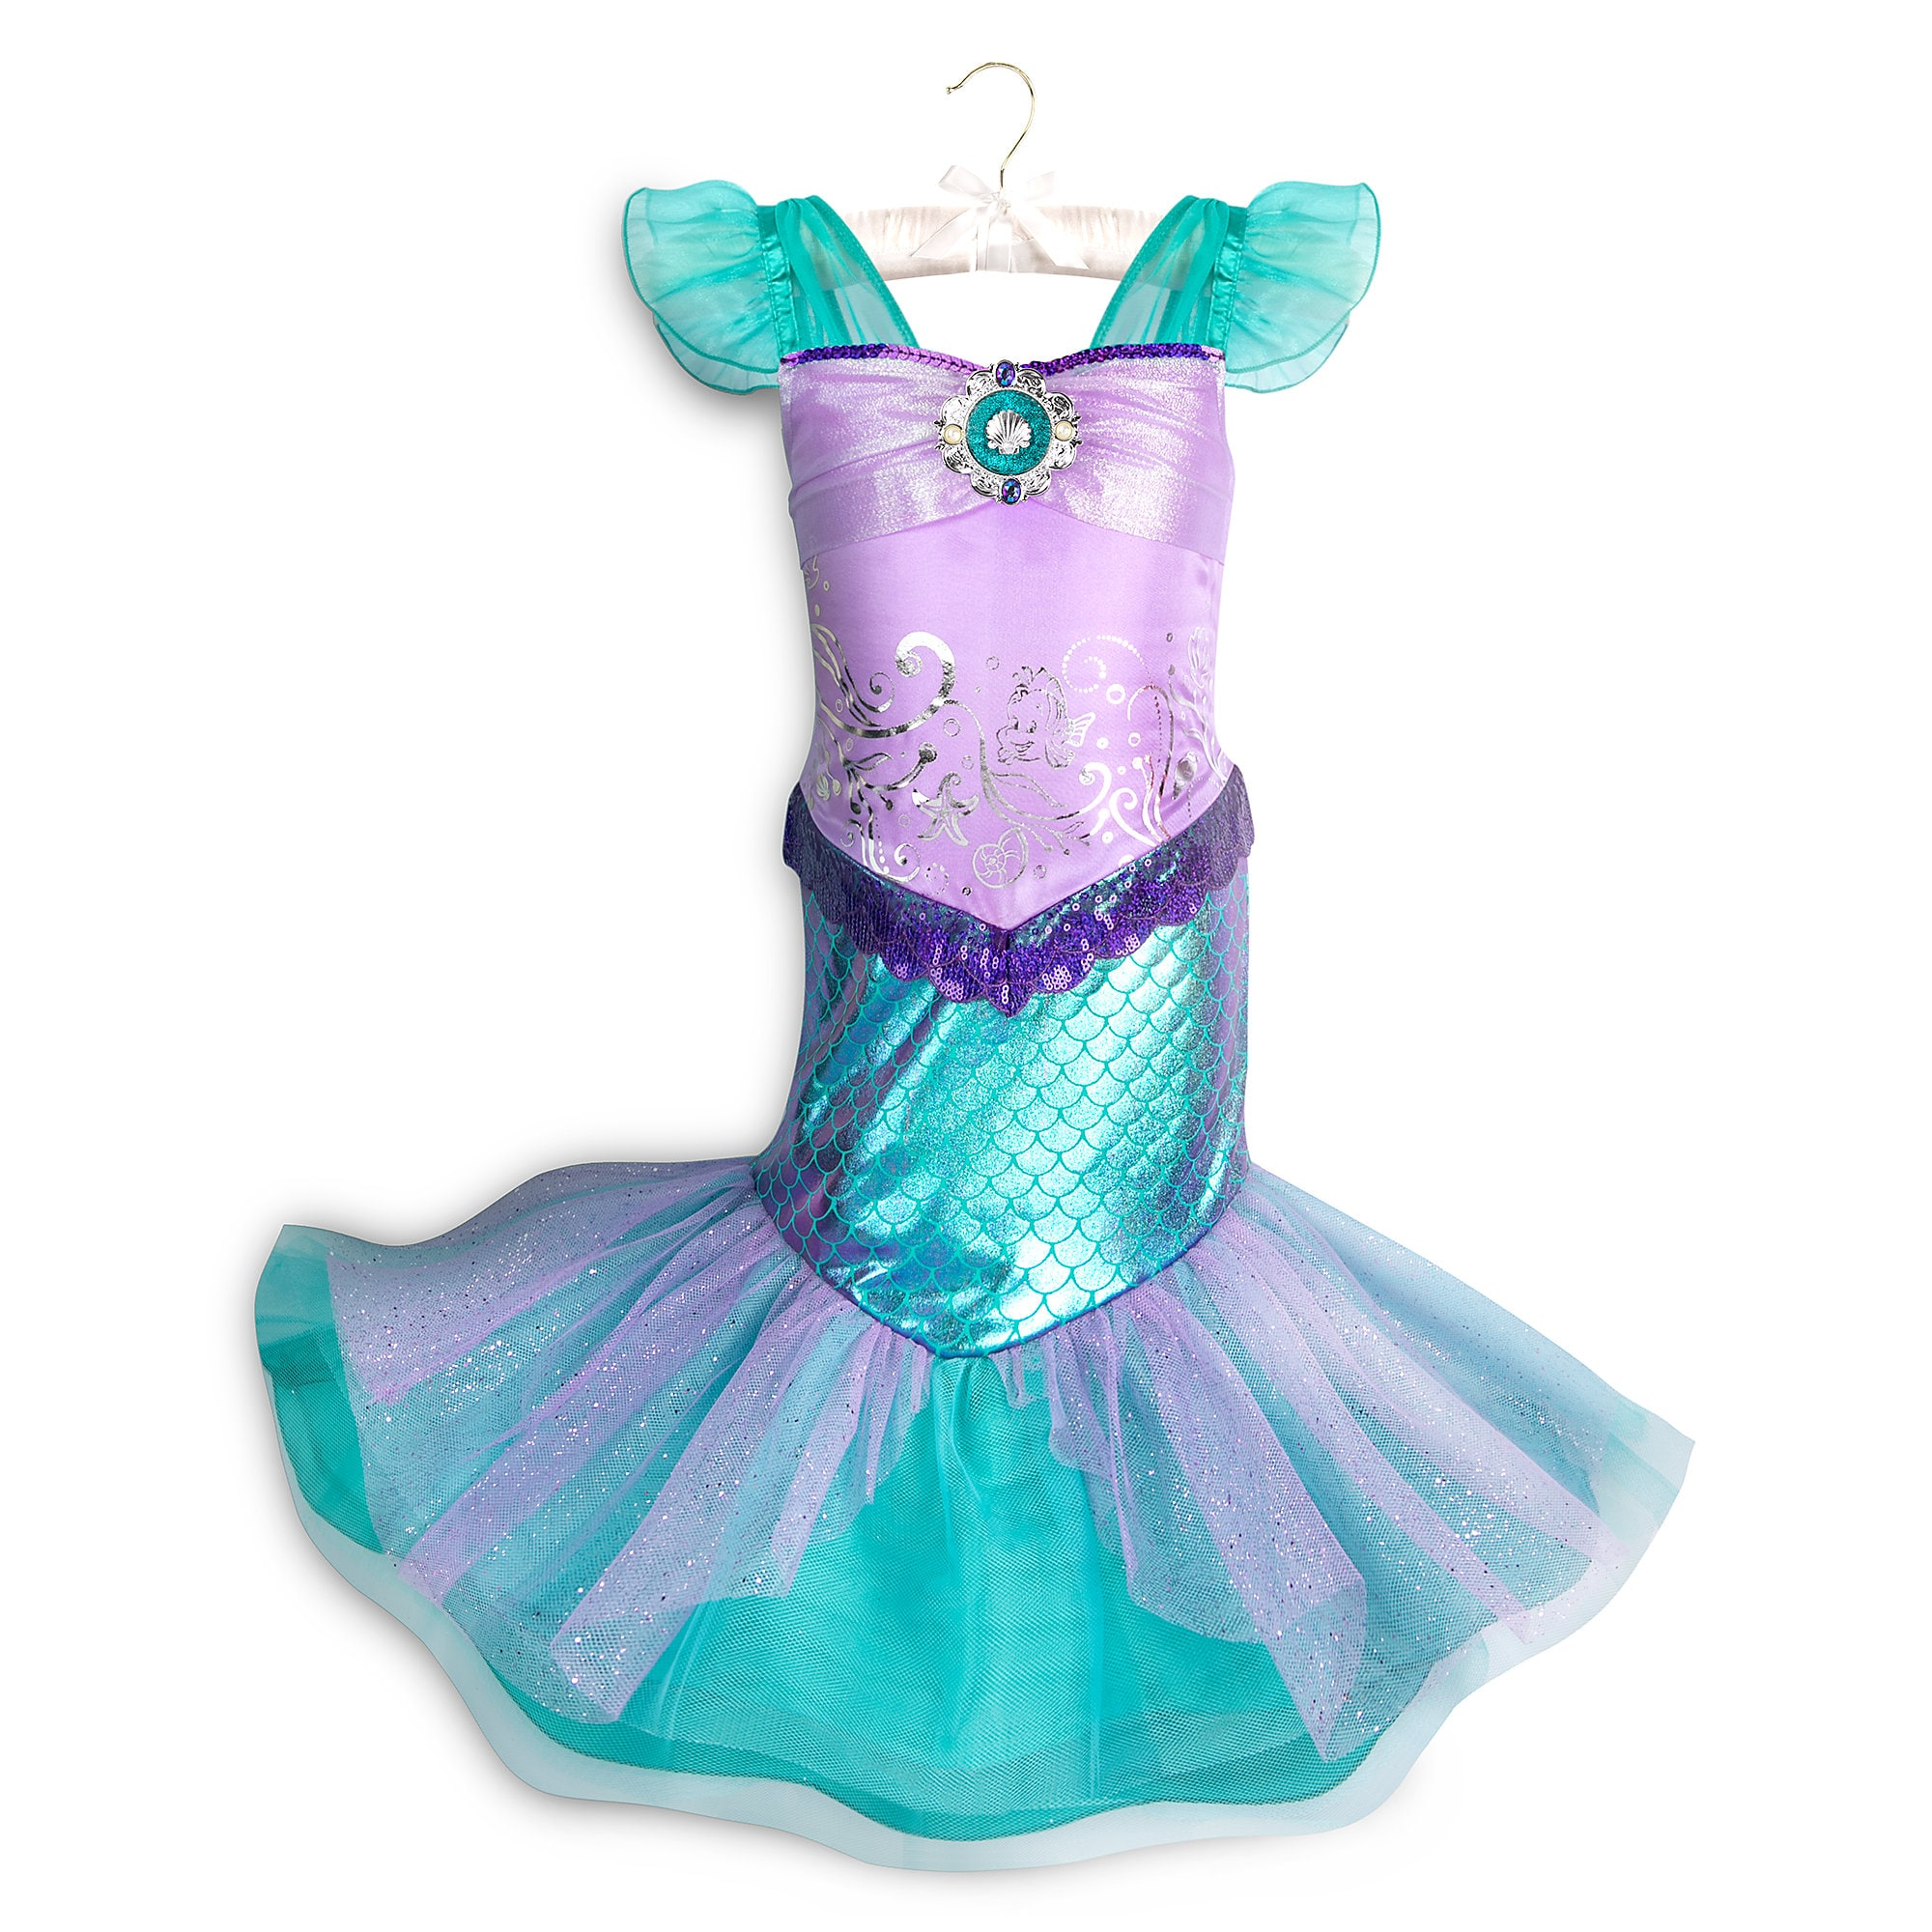 Princess Ariel Costume For Adults Part - 17: Product Image of Ariel Costume for Kids # 1